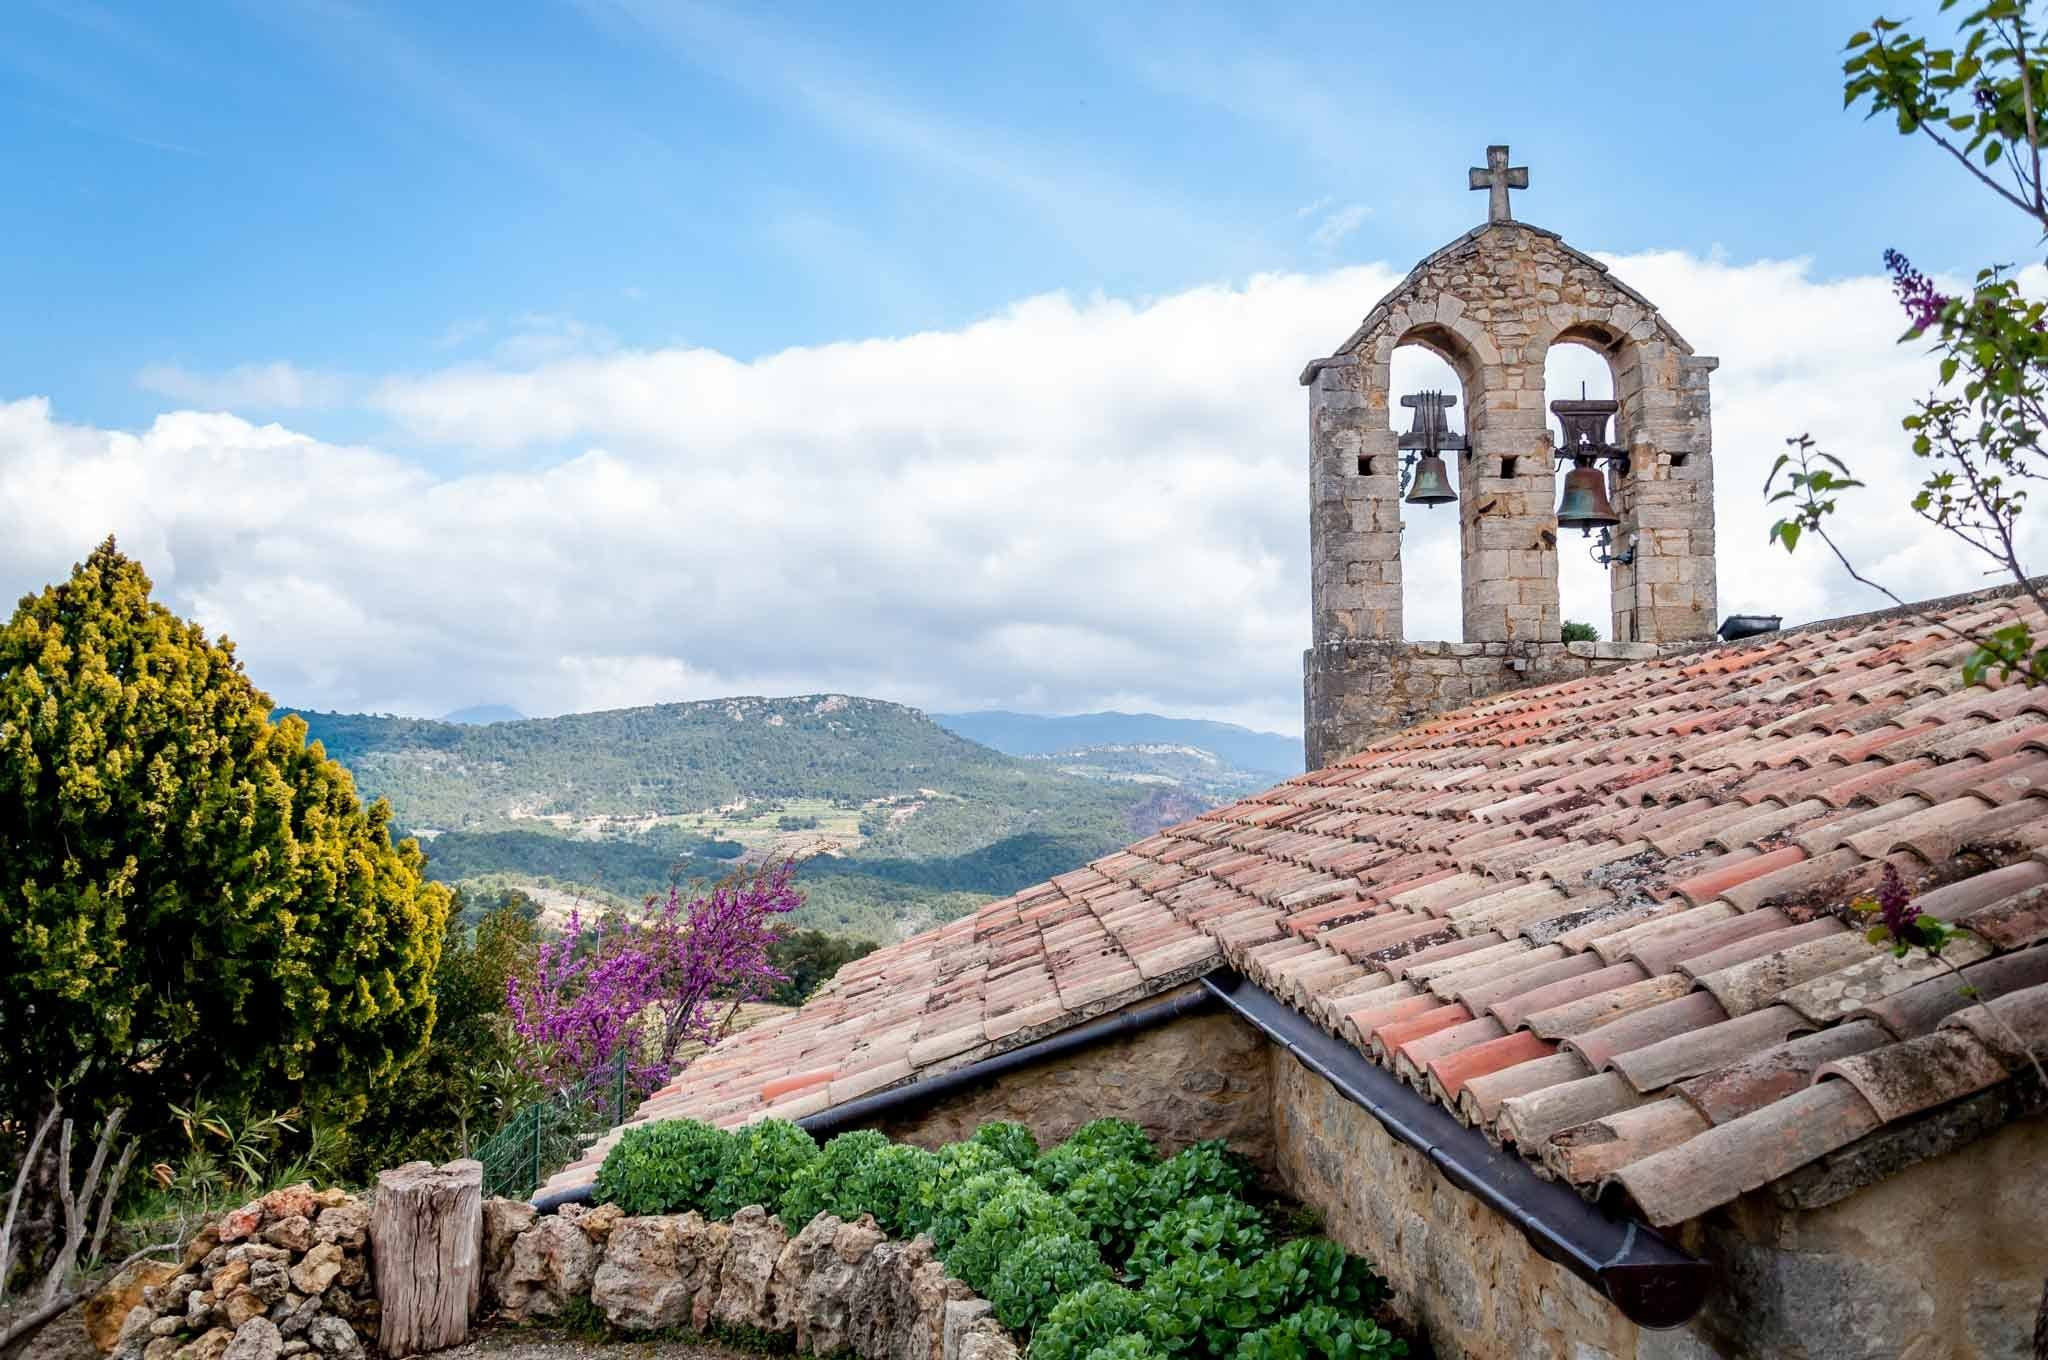 Church bells in Suzette in the South of France